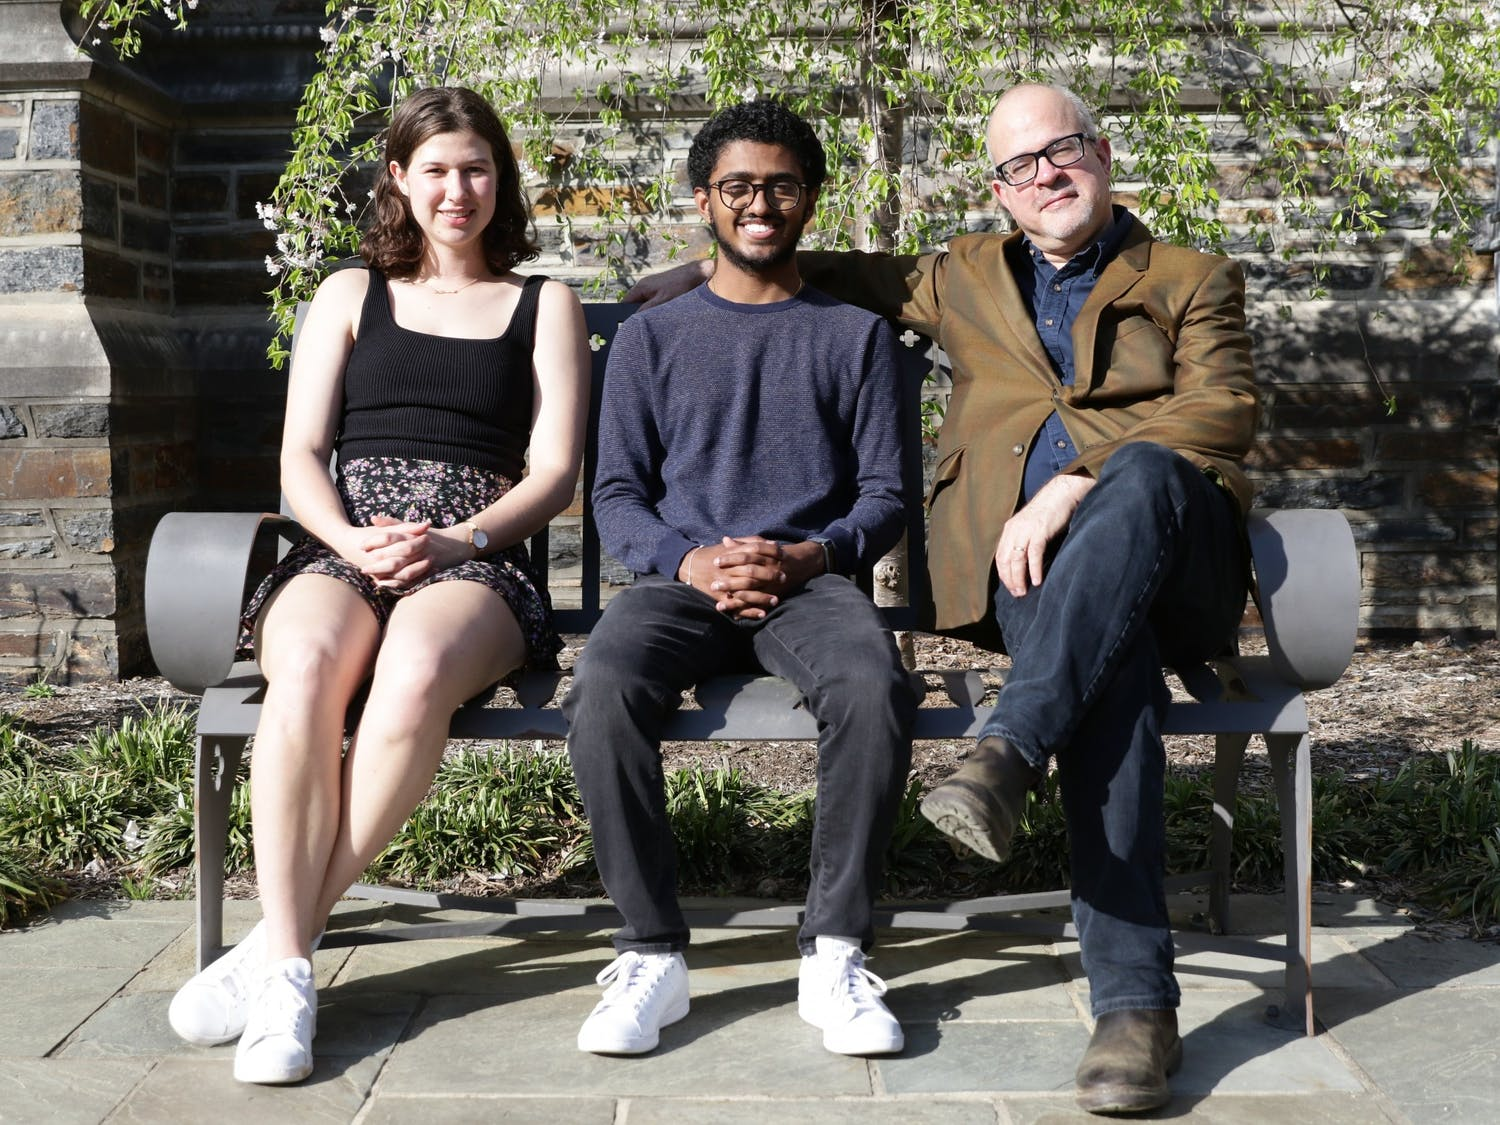 Juniors Anne Crabill and Ishaan Kumar are teaching a house course on the politics, history and societal implications of vaccines, with Misha Angrist, associate professor of the practice at Social Science Research Institute, as their faculty advisor.